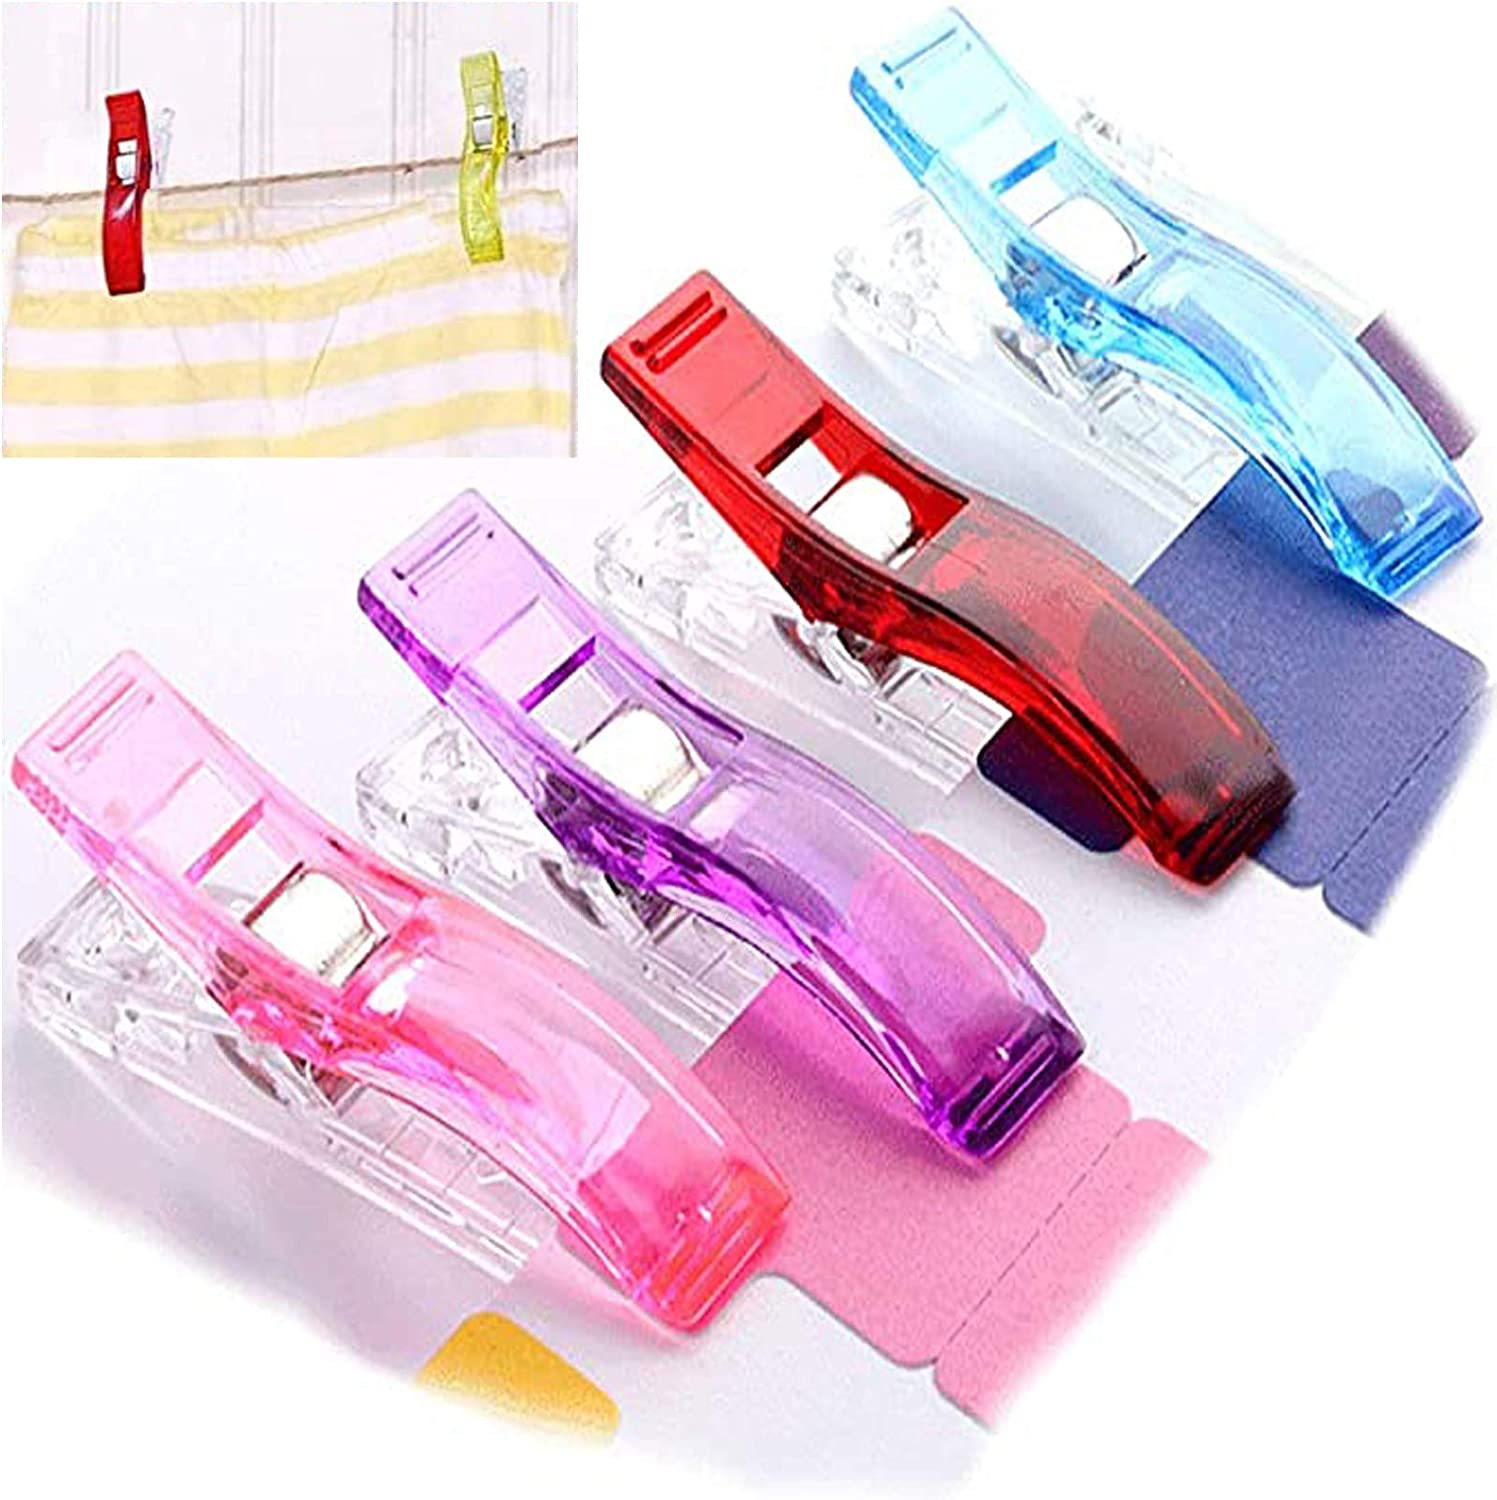 40 PCS Assorted Color Multipurpose Large Sewing Clips,Fabric Clips,Sewing Craft Clips for Quilting,Crafts,Fabric,Crochet,Knitting,Hanging Small Things